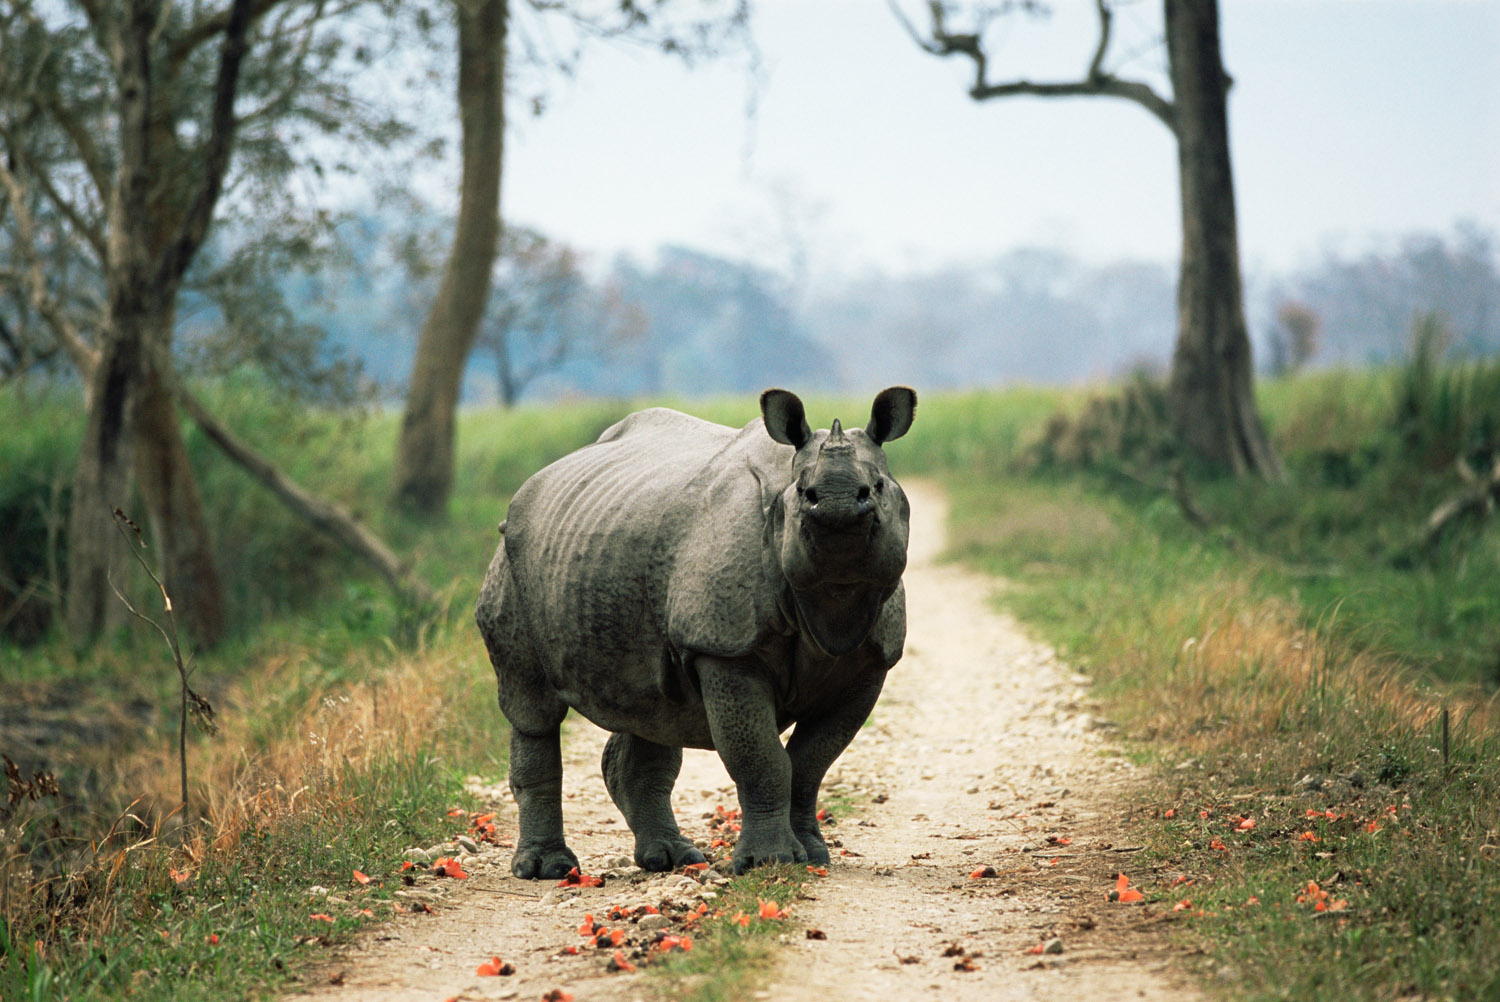 Indian rhinoceros on track, Kaziranga National Park, Assam, India